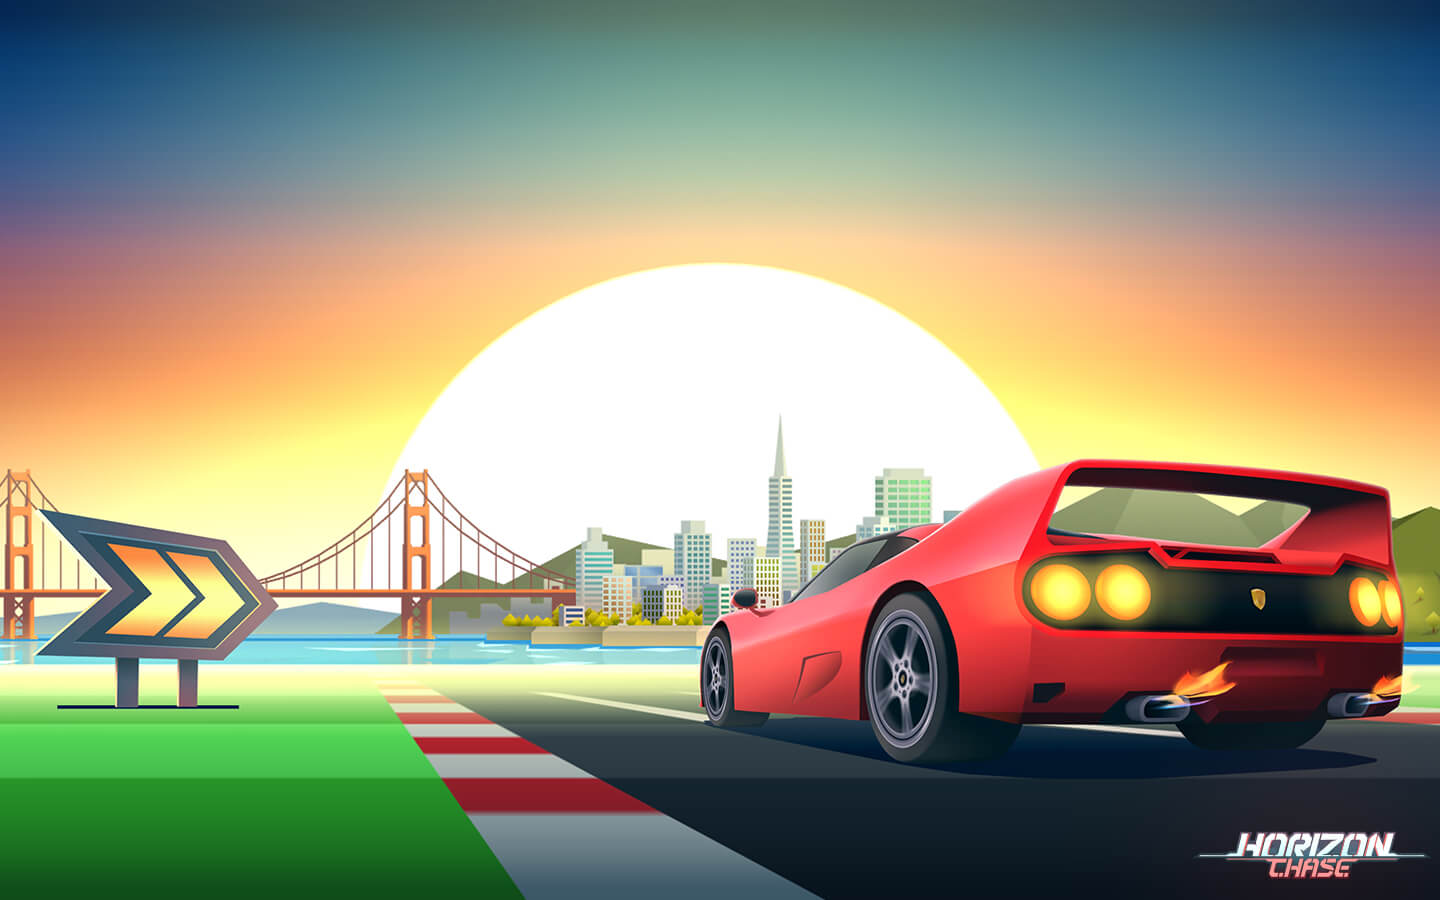 Horizon Chase Has A Secret Marriage Proposal In It